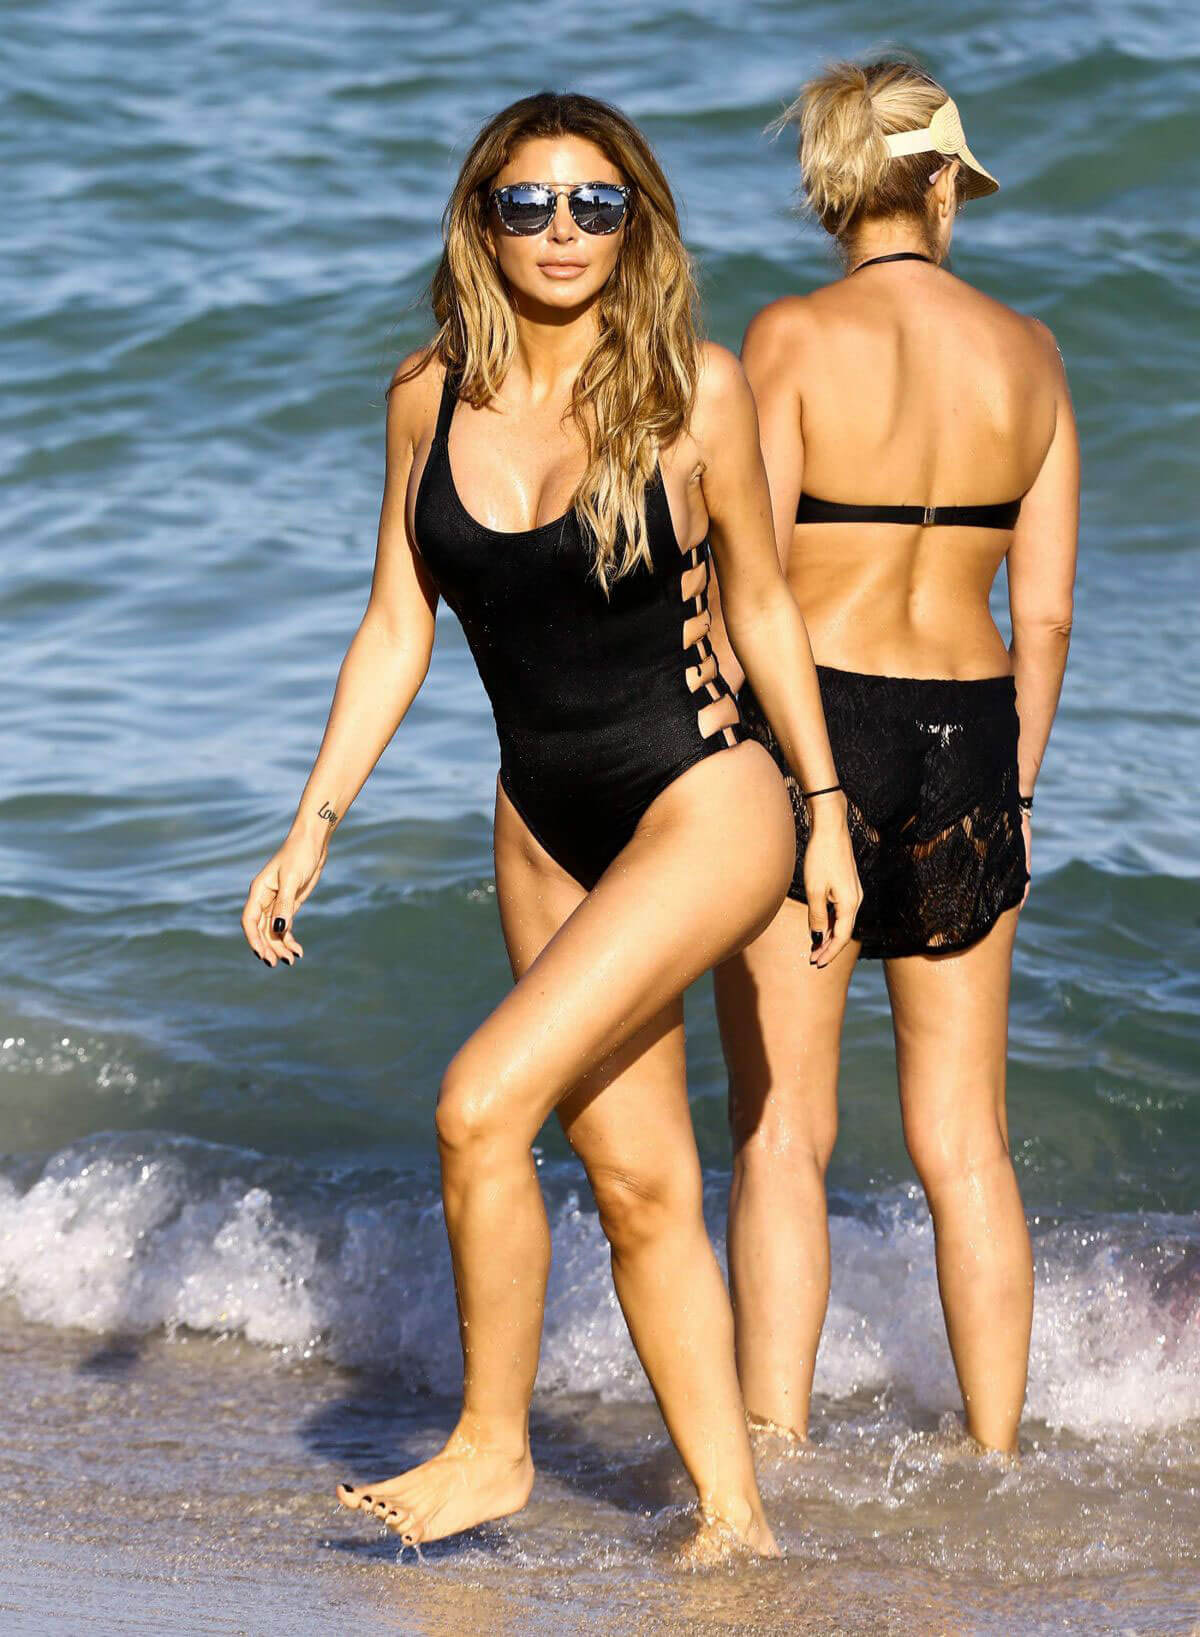 Larsa Pippen in Swimsuit on the Beach in Miami Photos